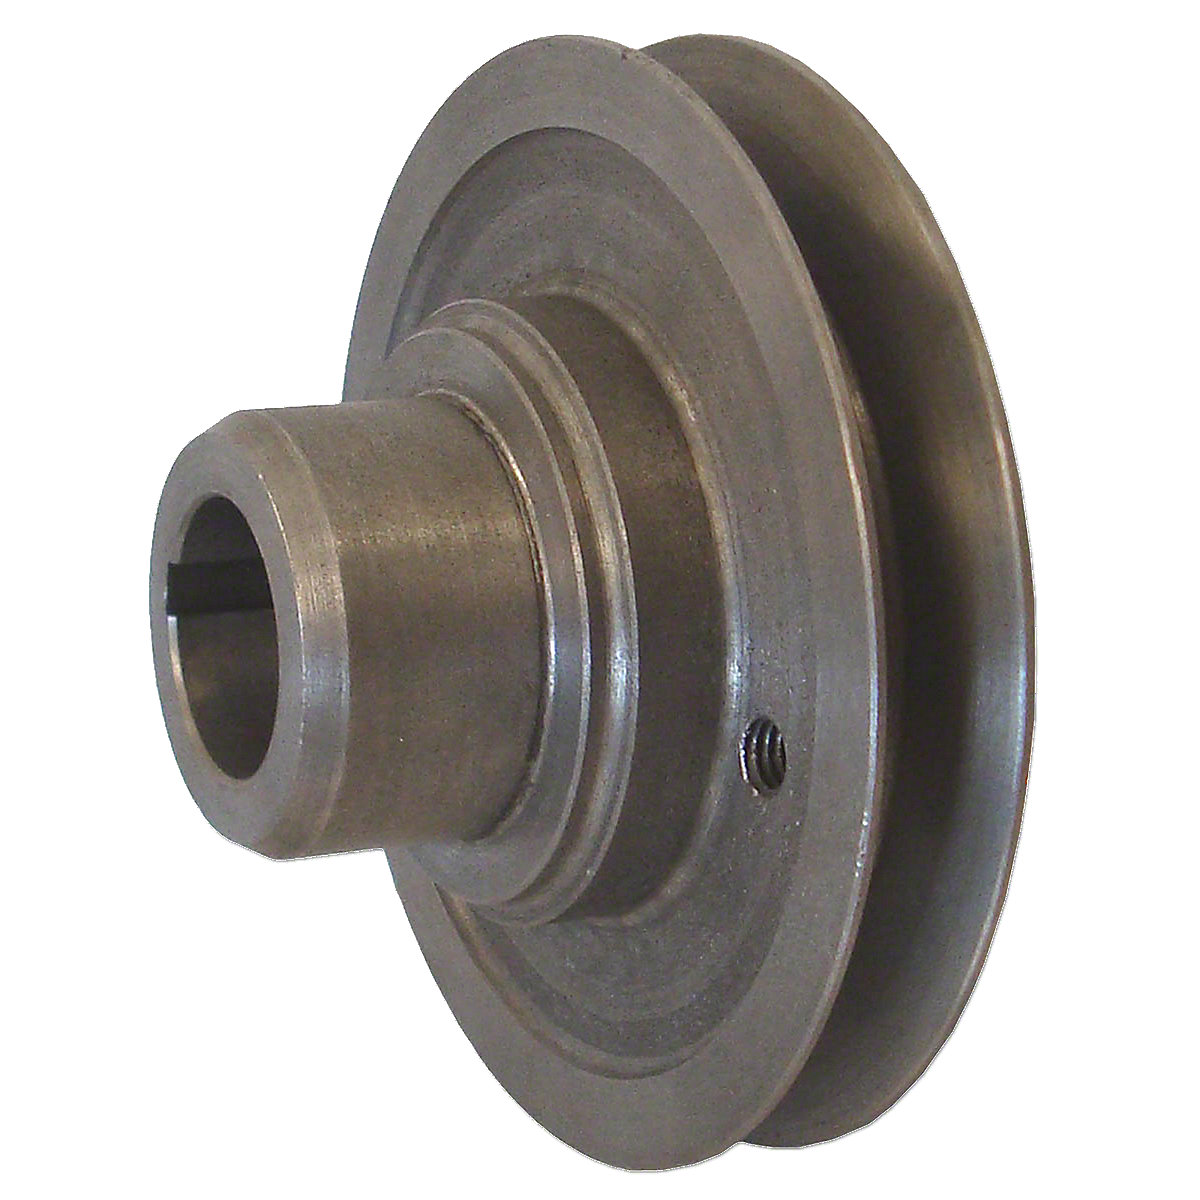 Crank Shaft Pulley For Allis Chalmers: G